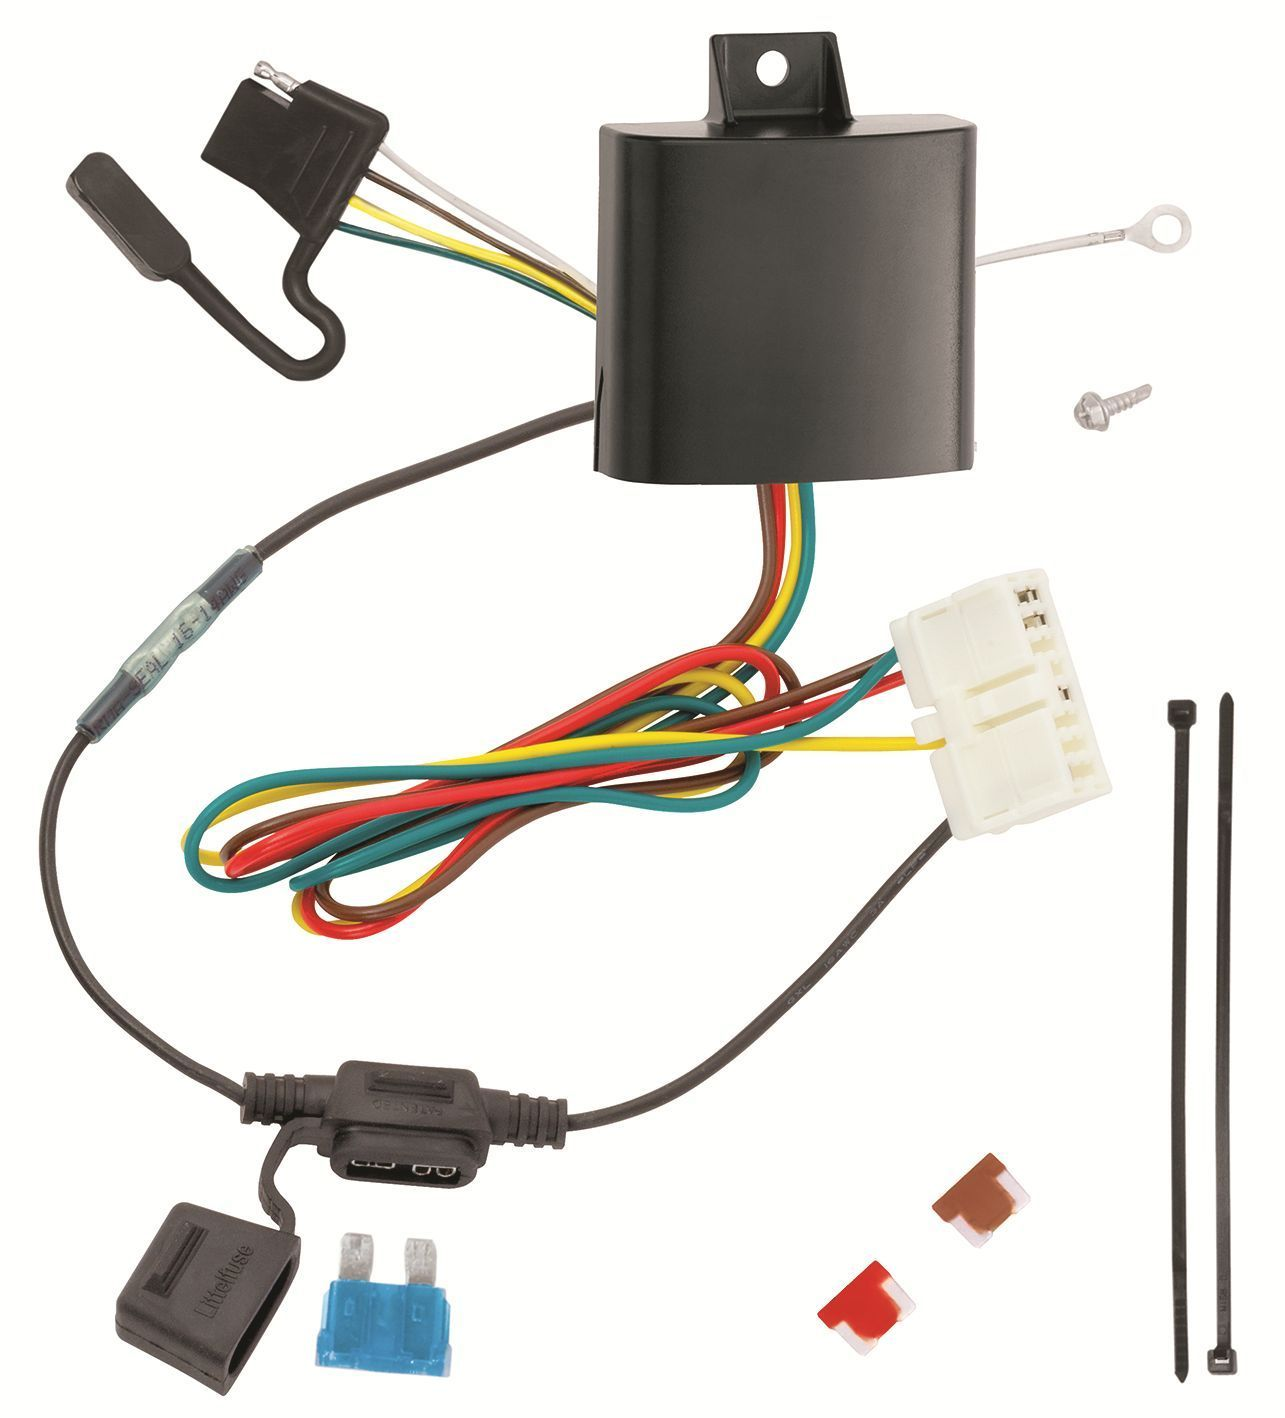 2510 Wiring Harness Auto Electrical Diagram Land Rover Discovery 2 Trailer Acura 2011 Rdx Nissan Armada